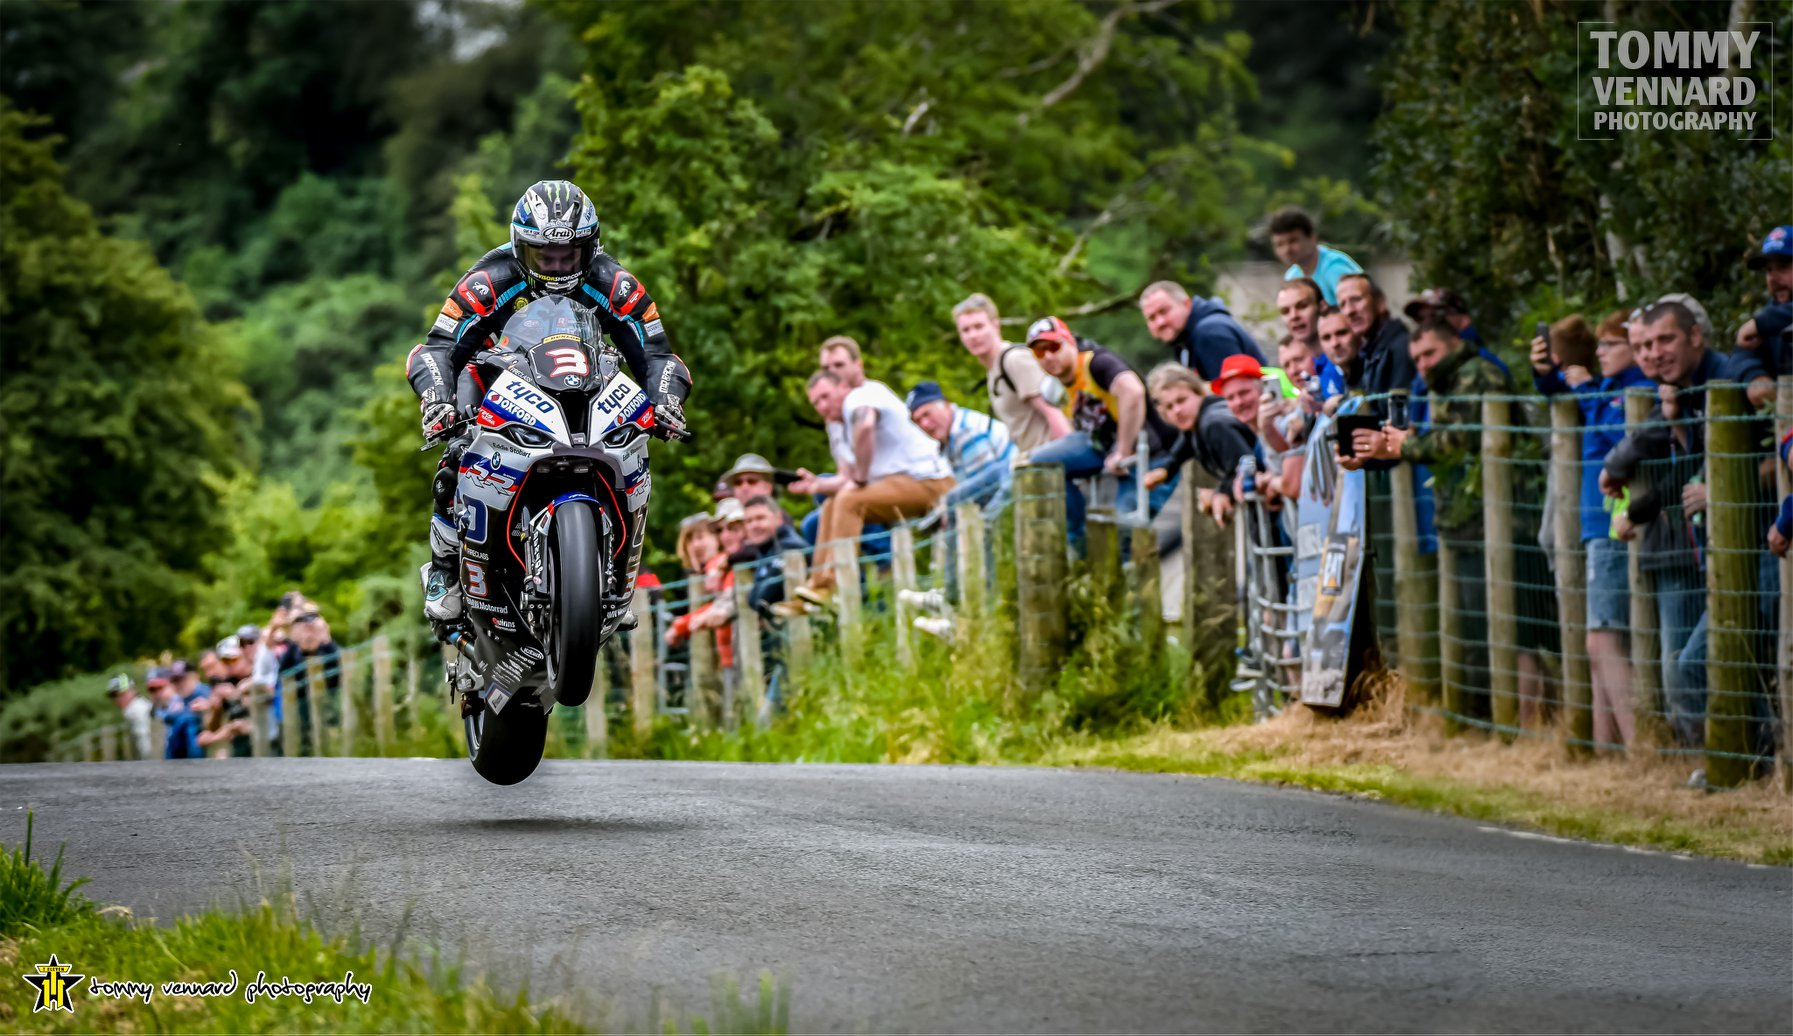 Armoy Preview Part 1: Supersport/Superbike/Race of Legends